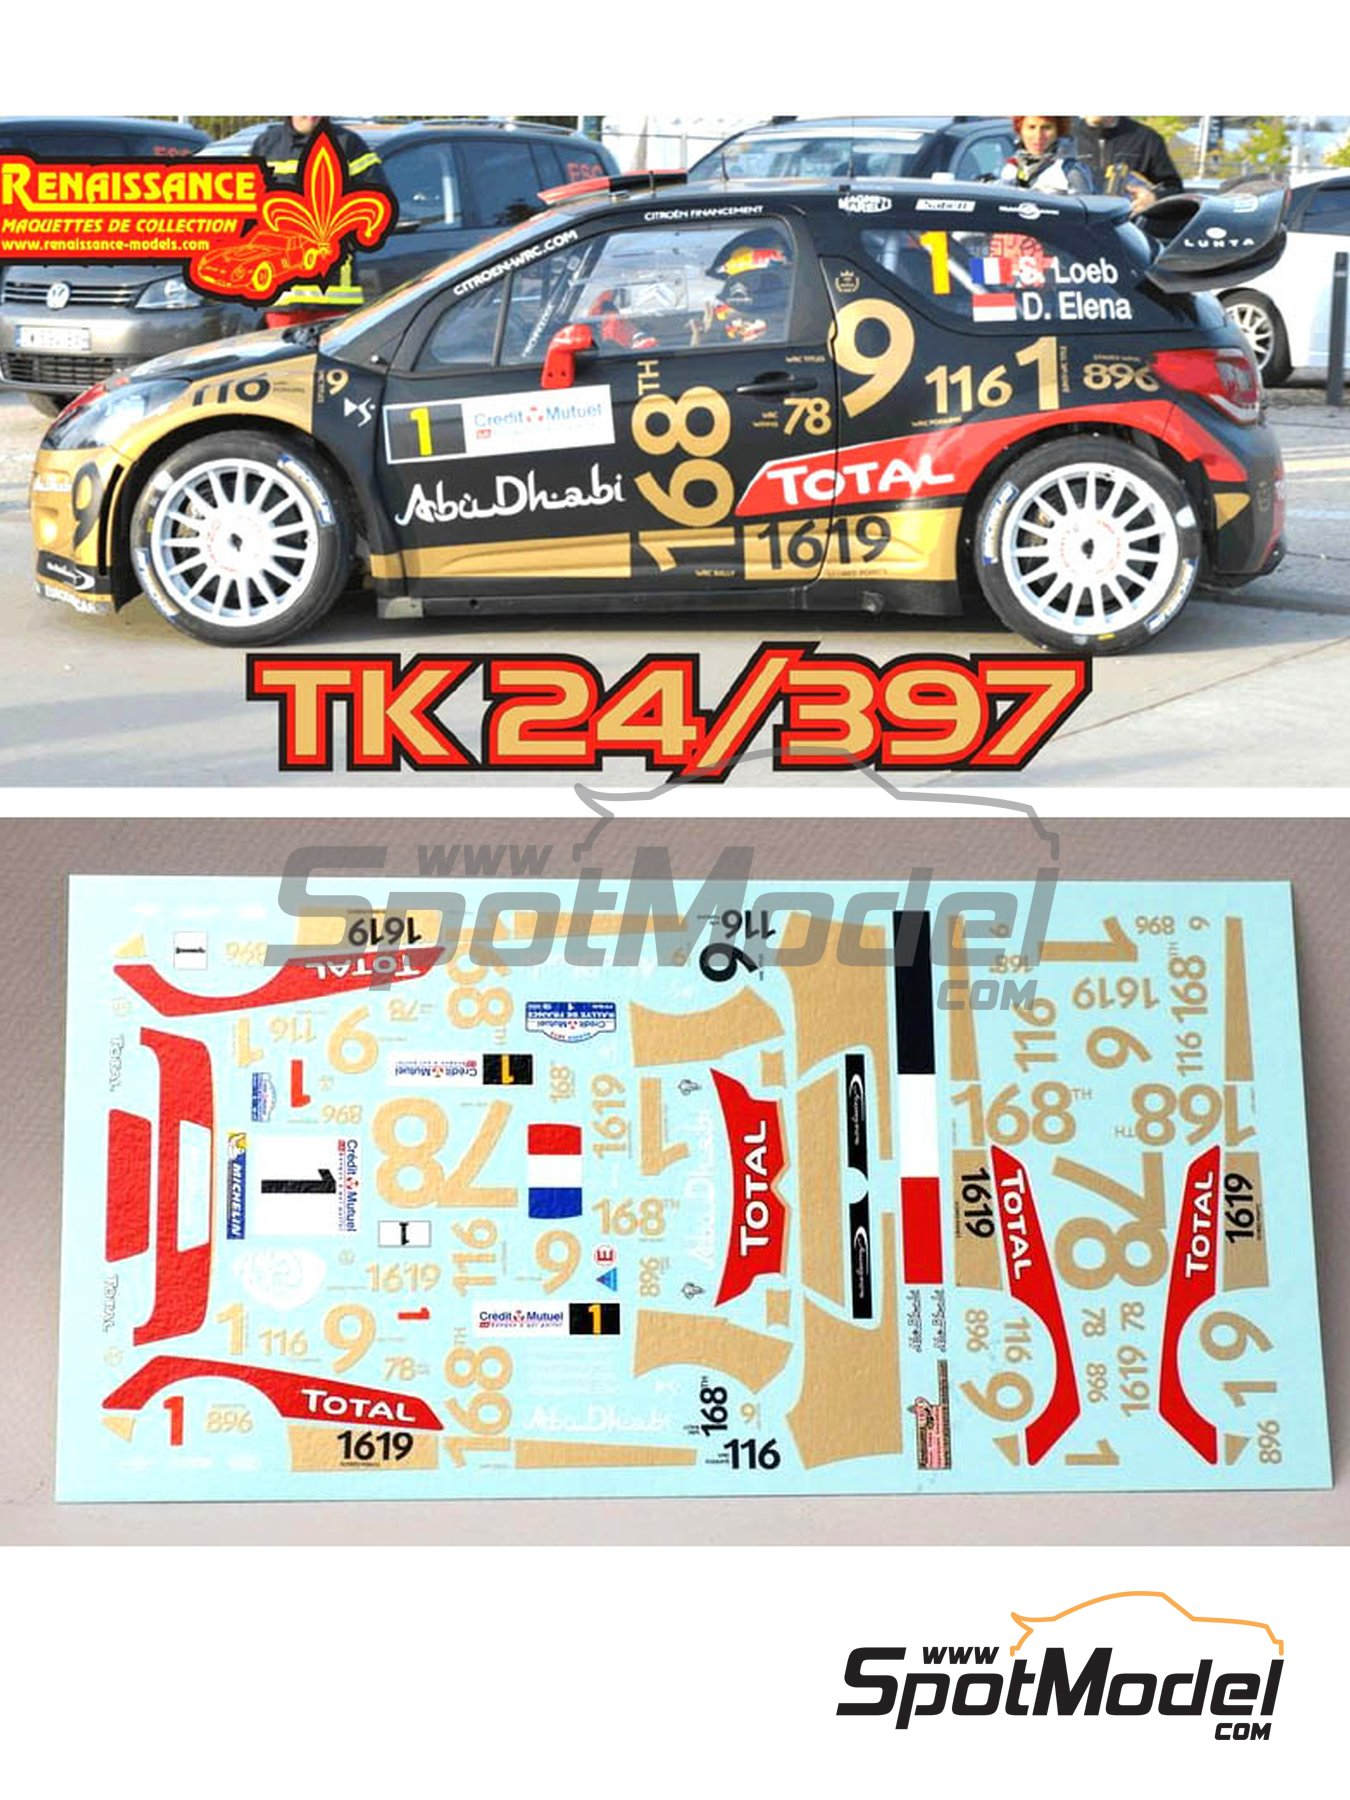 Citroen DS3 WRC Abu Dhabi - Alsace - Vosges Rally 2013 | Marking / livery in 1/24 scale manufactured by Renaissance Models (ref. TK24-397) image